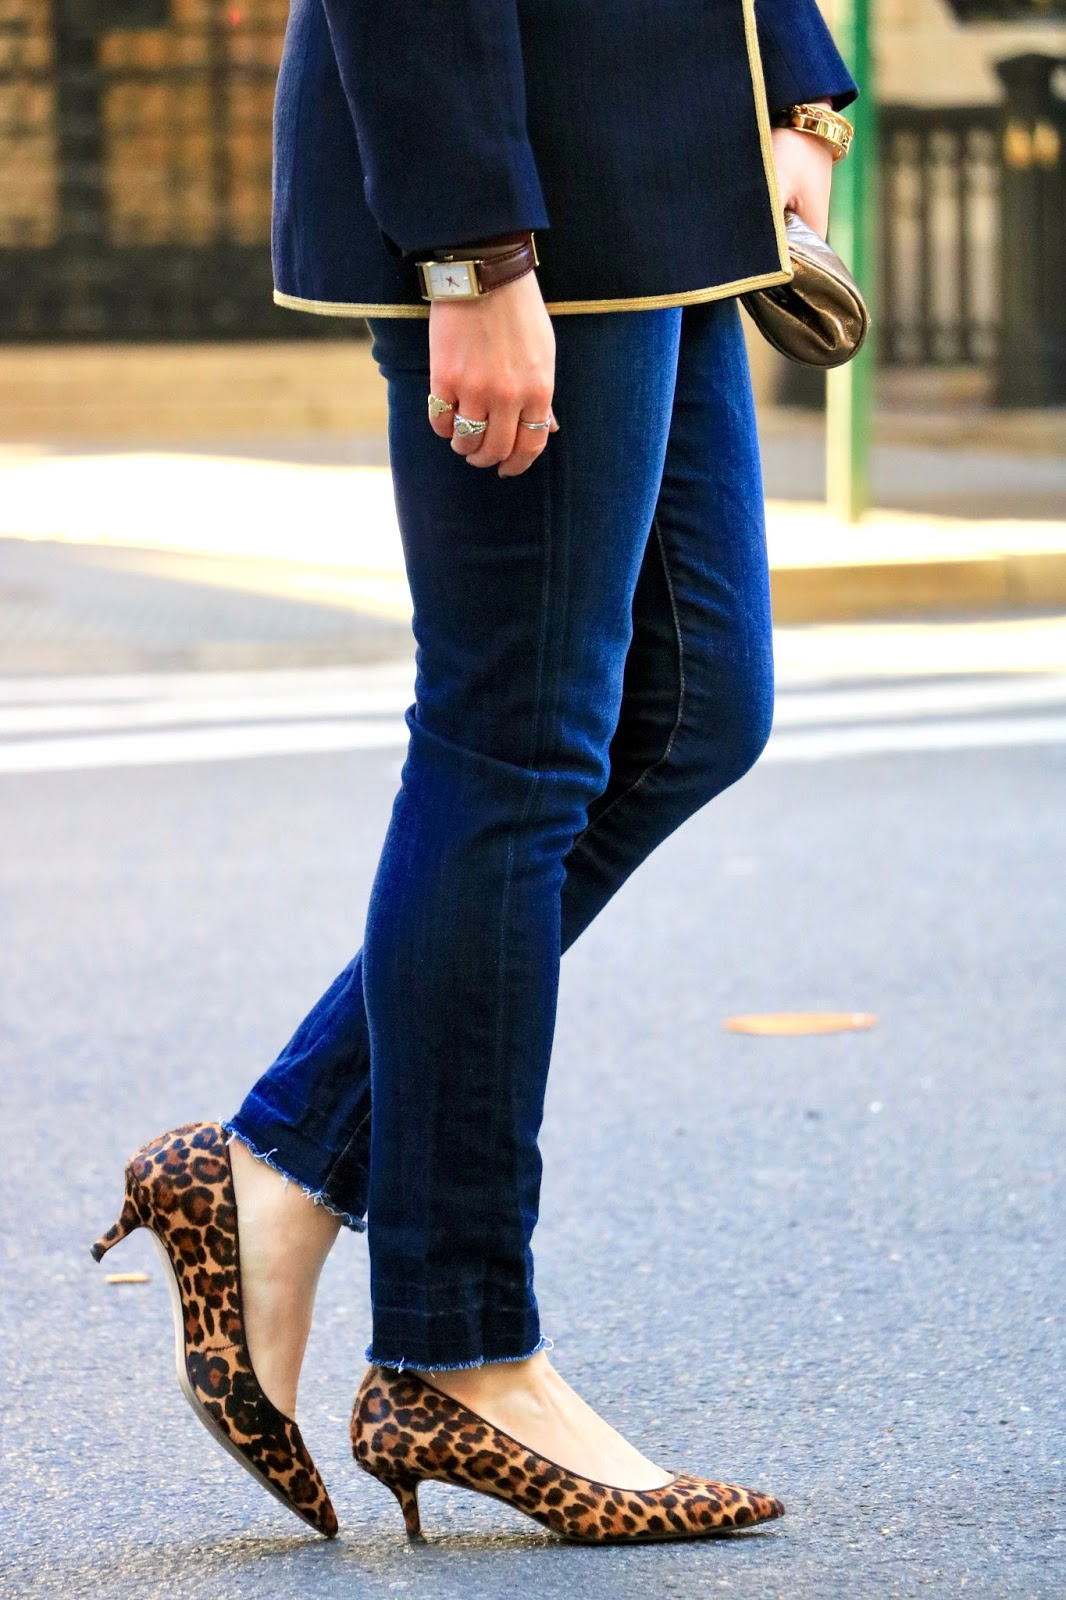 Nyc fashion blogger Kathleen Harper wearing Ann Taylor leopard pumps